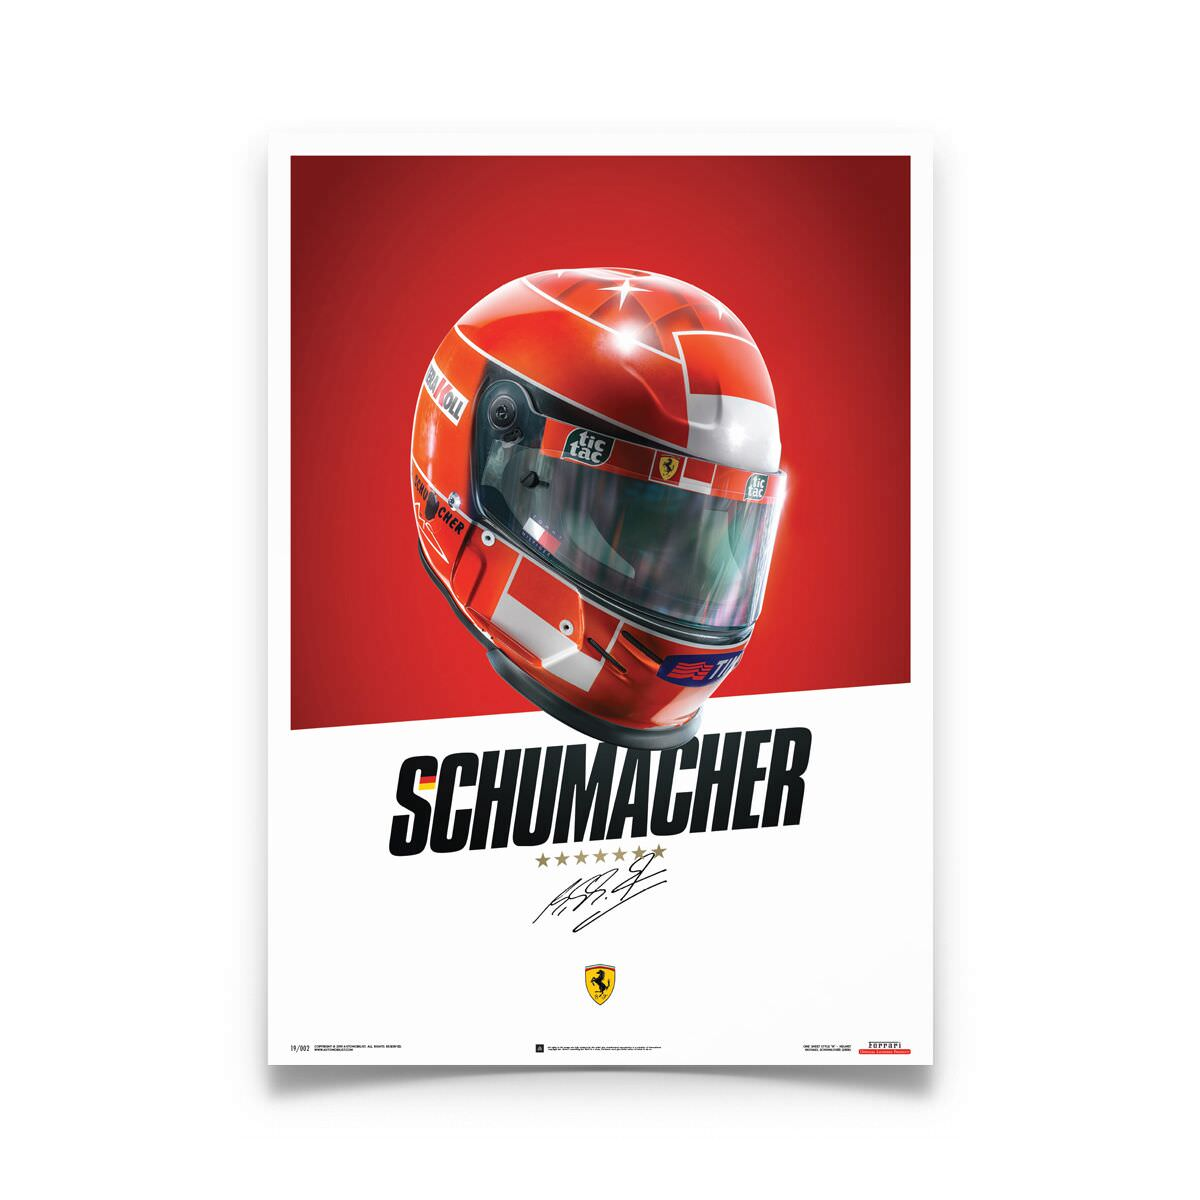 Product image for Ferrari F1 2000 Michael Schumacher Helmet Poster